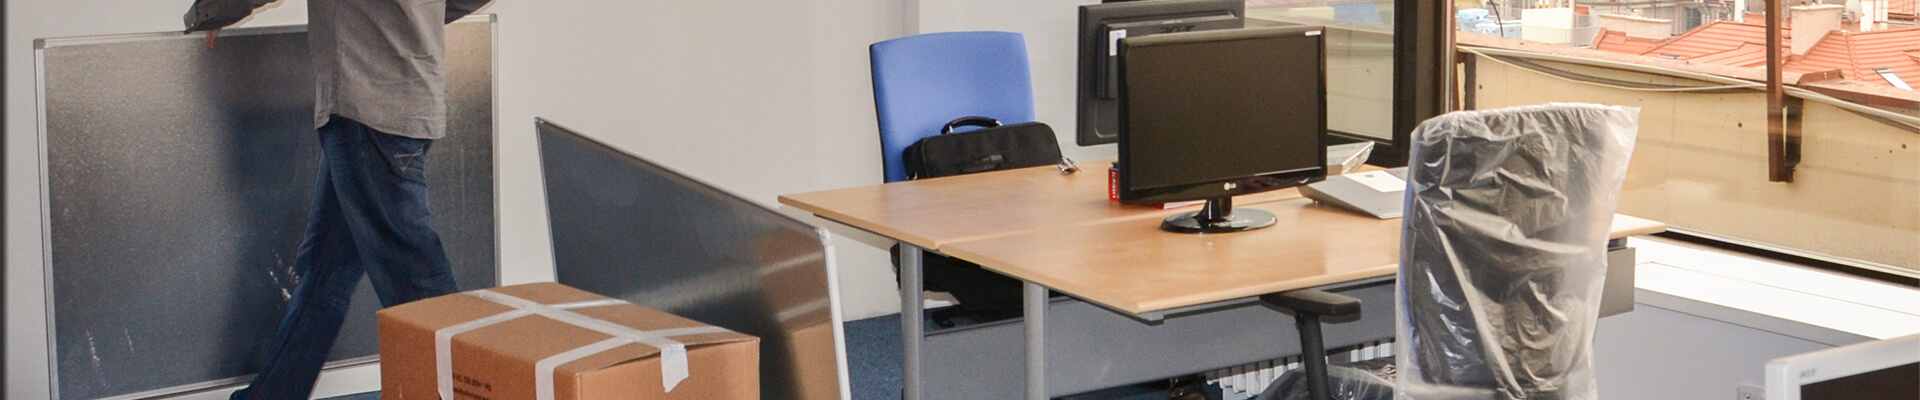 Office Furniture Assembly And Installation Services in Charlotte, NC